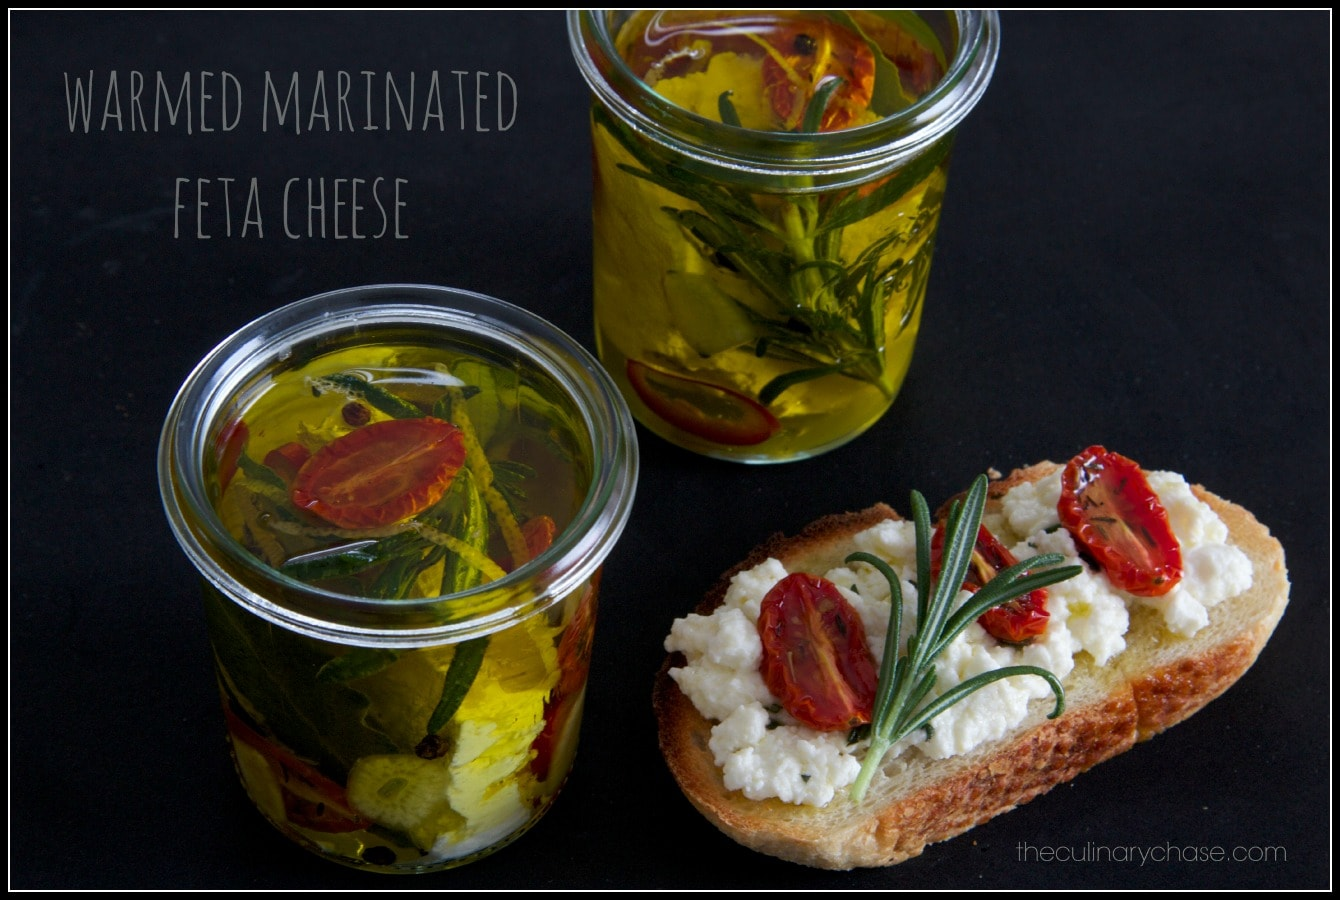 warmed marinated feta cheese